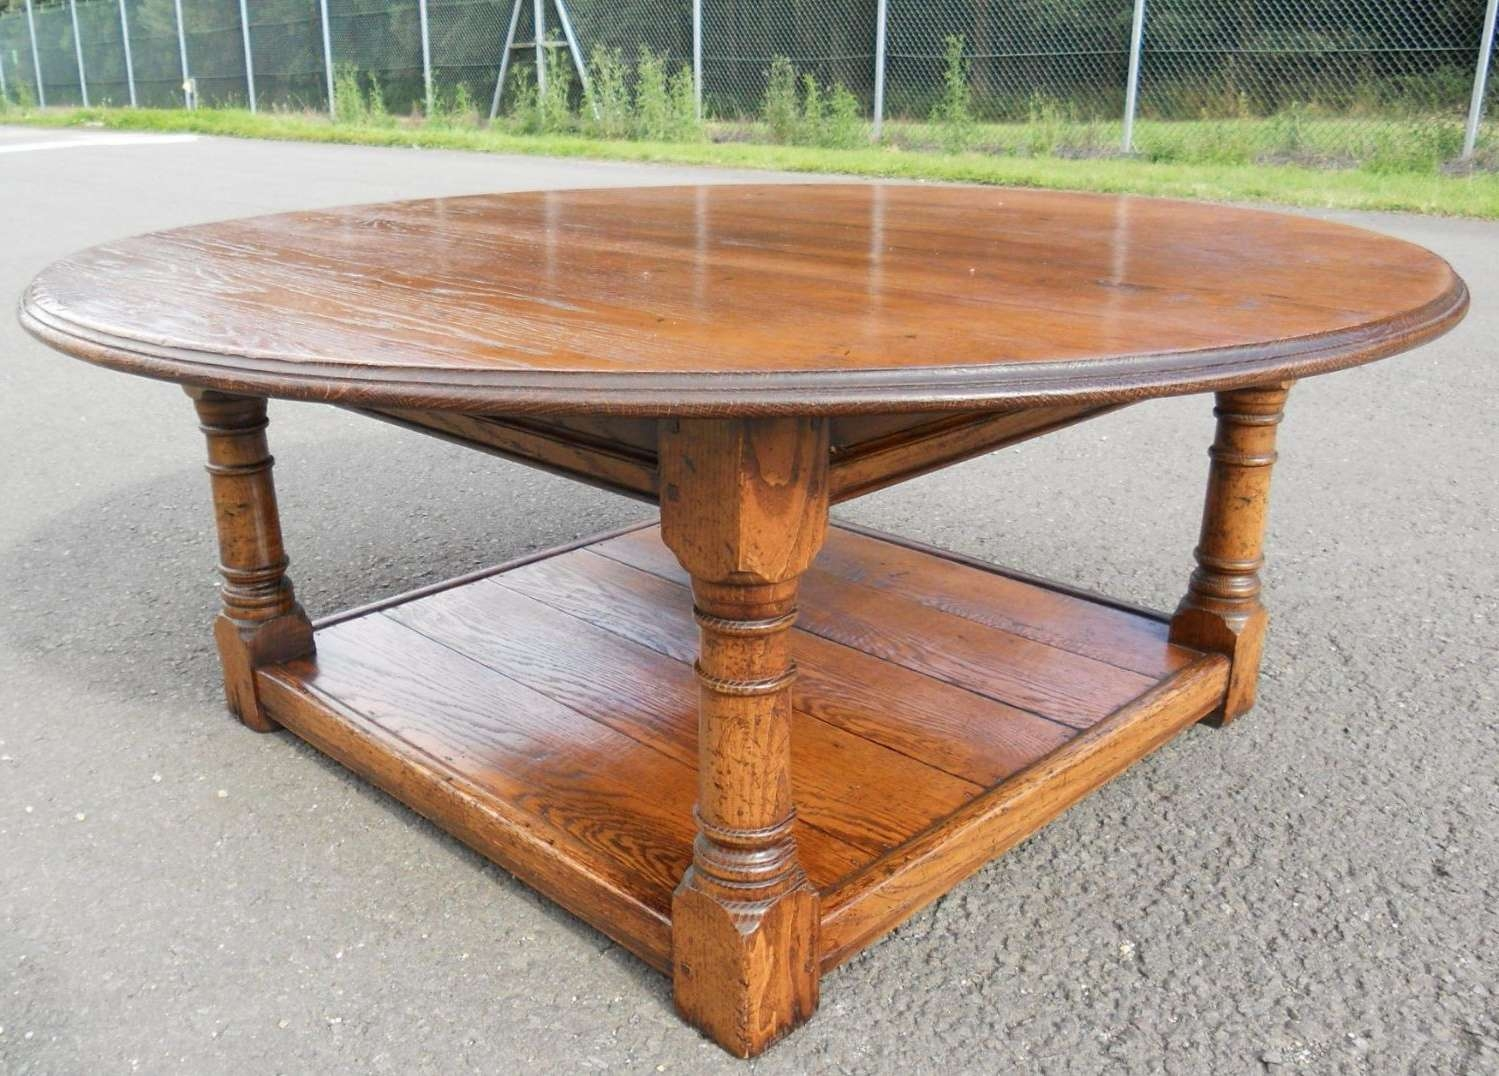 Large Round Oak Coffee Table – Sold Pertaining To Well Known Round Oak Coffee Tables (View 15 of 20)